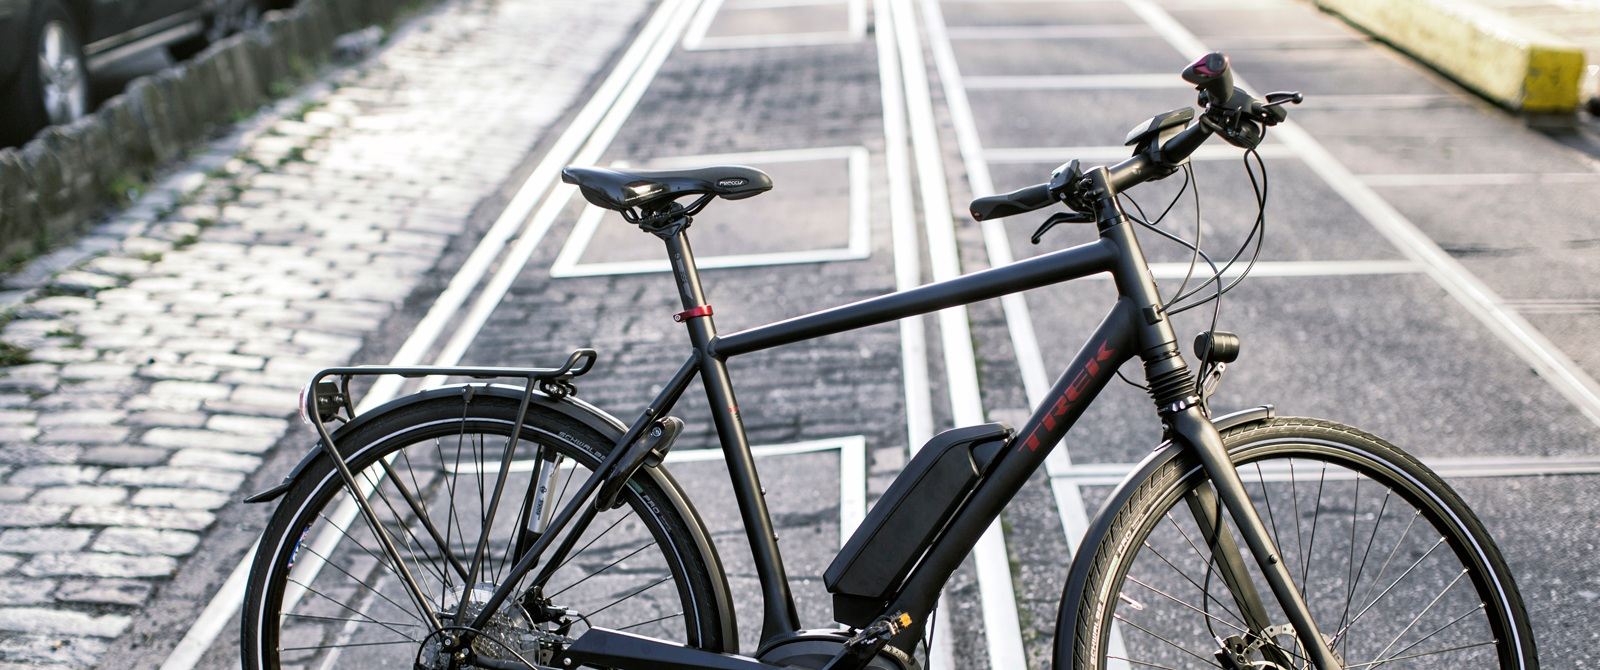 Electric Assist Bikes On Trek Travel Vacations